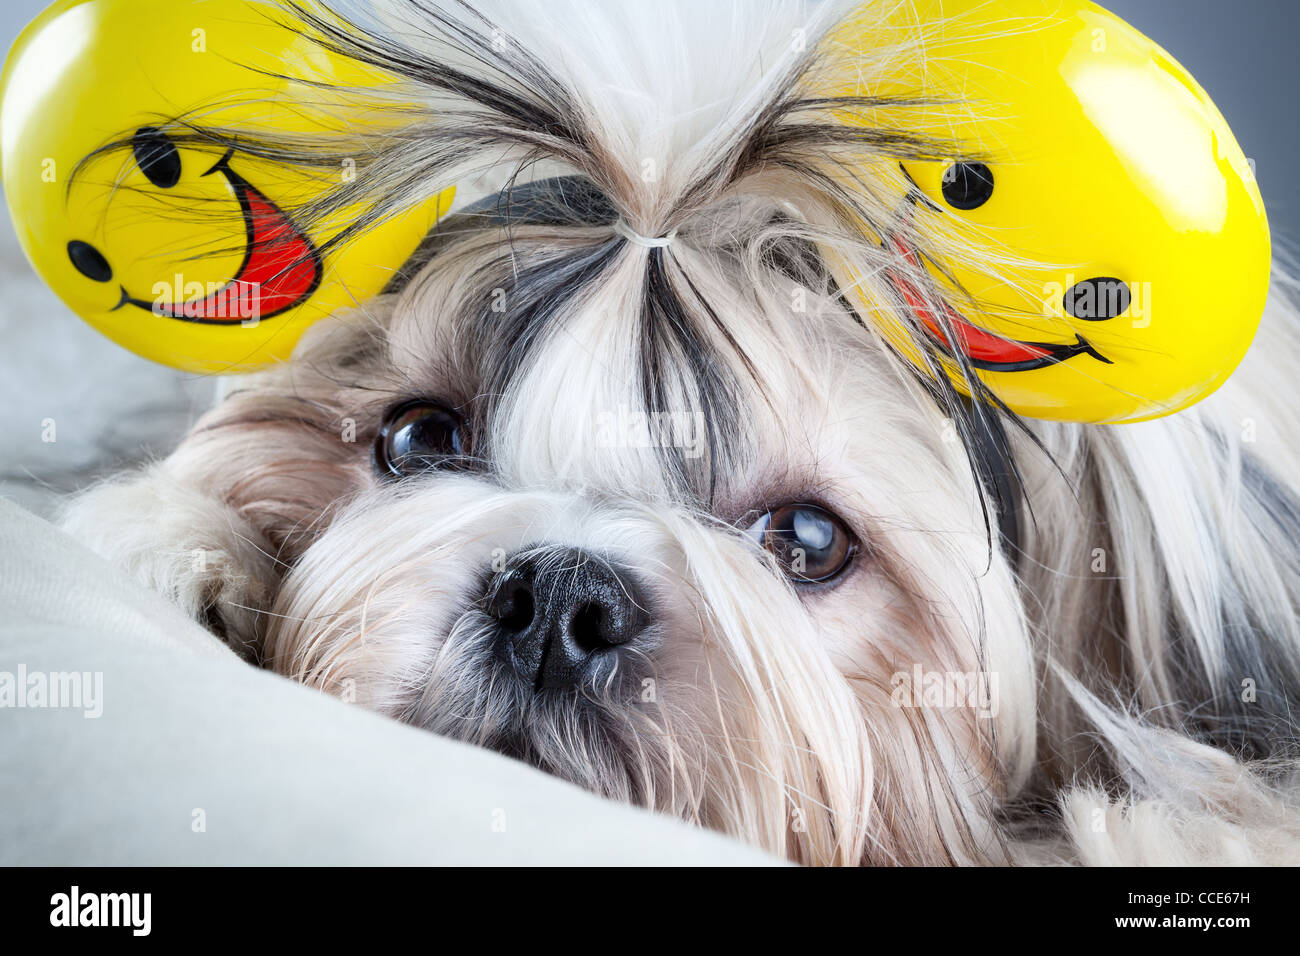 Shih Tzu Dog High Resolution Stock Photography And Images Alamy